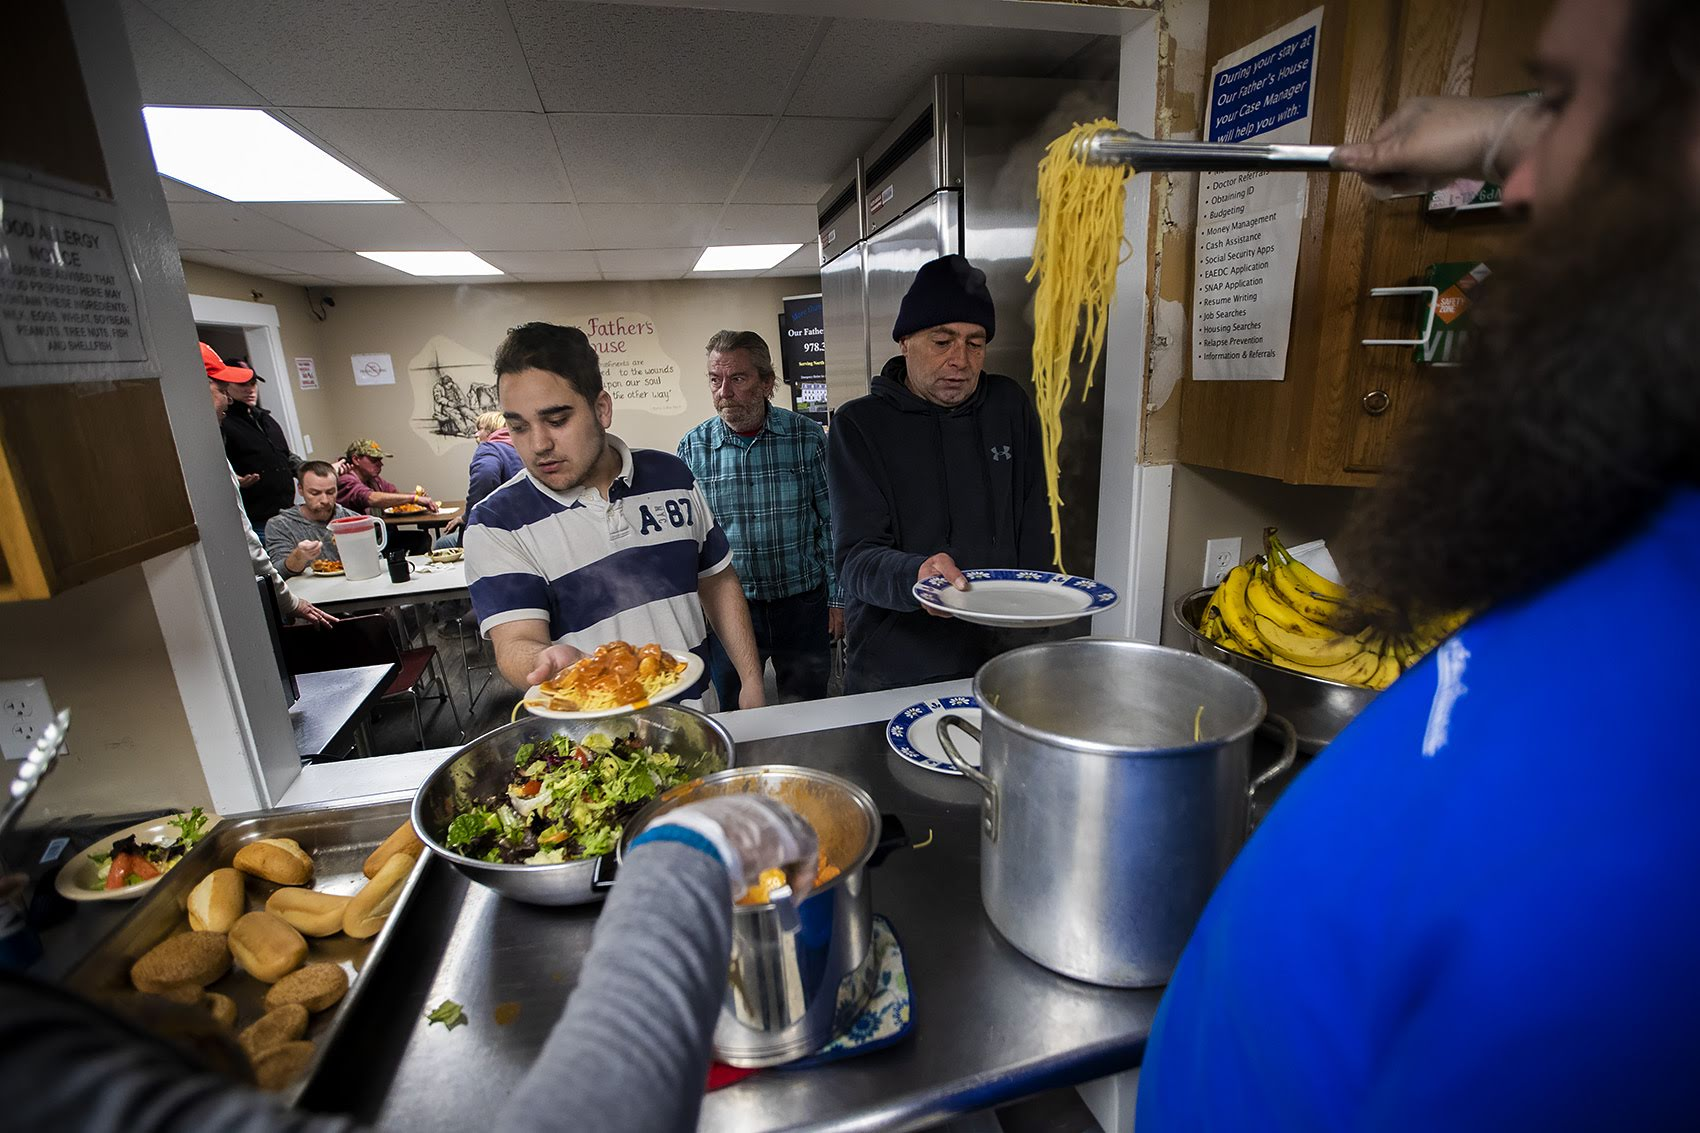 Guests recieve a spaghetti dinner at Our Father's House in Fitchburg. (Jesse Costa/WBUR)